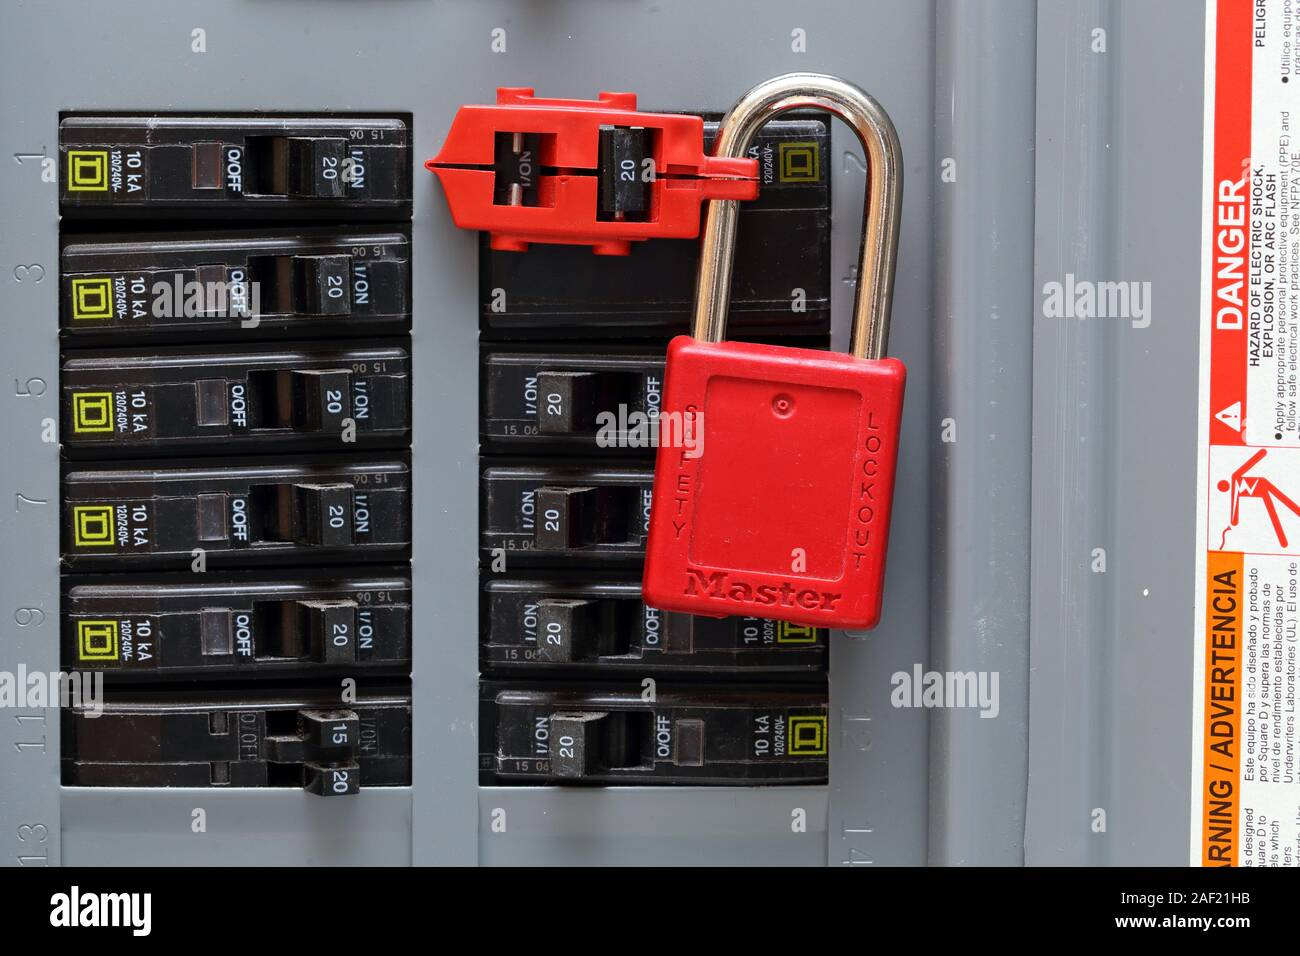 Relay Lockout Wiring on wiring diagrams hvac, circuit for medium voltage, 300ce starter, wiring for trane rooftop unit, test switch, wiring diagram for tc,